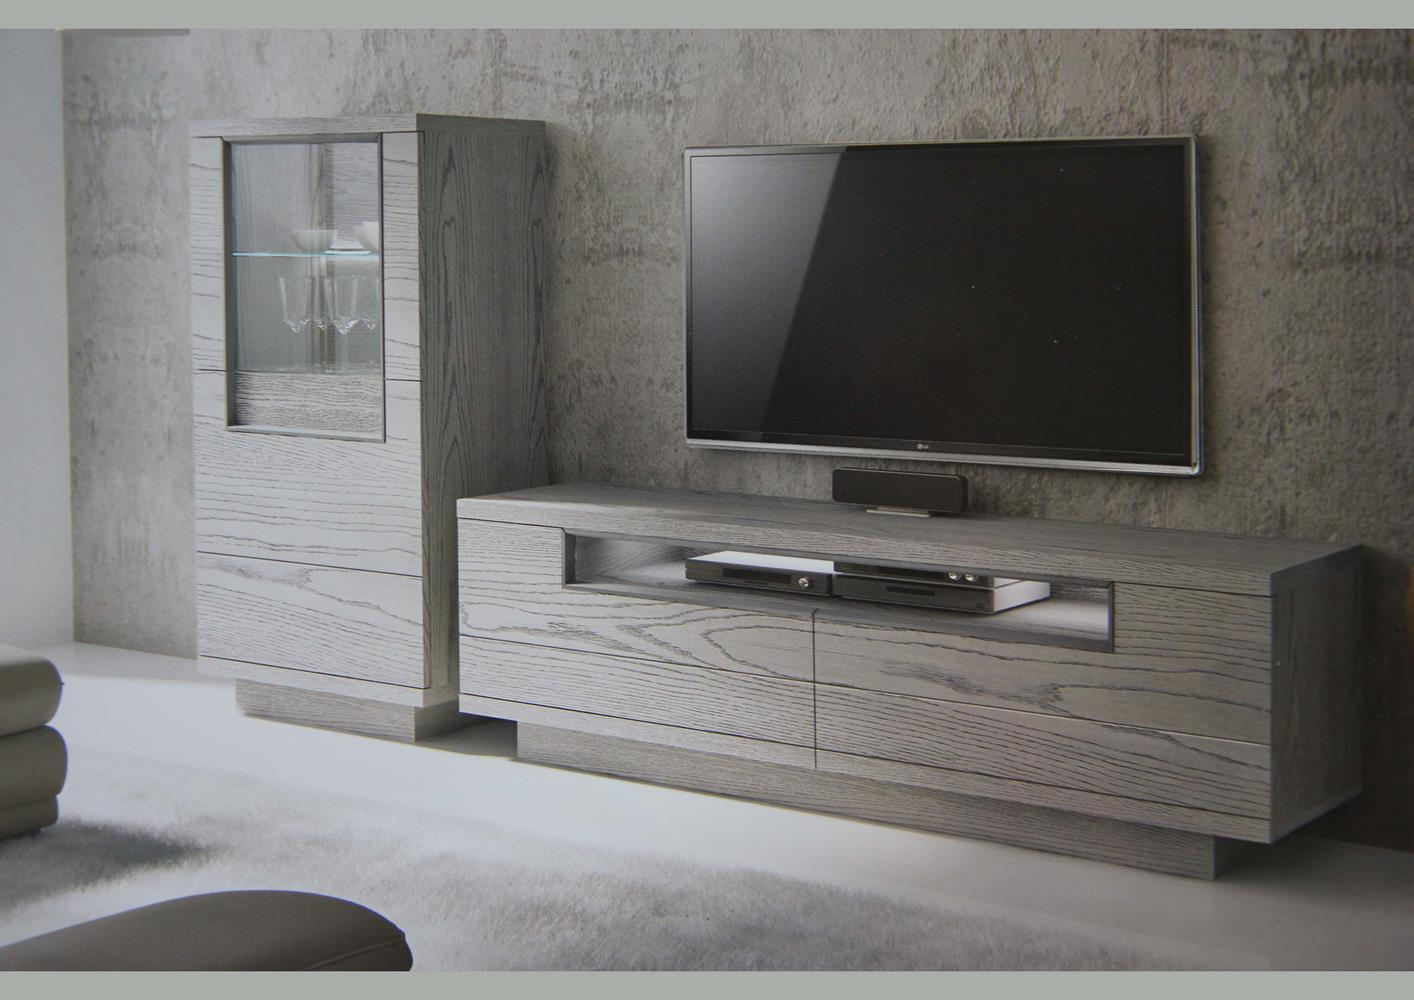 acheter votre meuble tv contemporain bois gris 2 portes 1. Black Bedroom Furniture Sets. Home Design Ideas